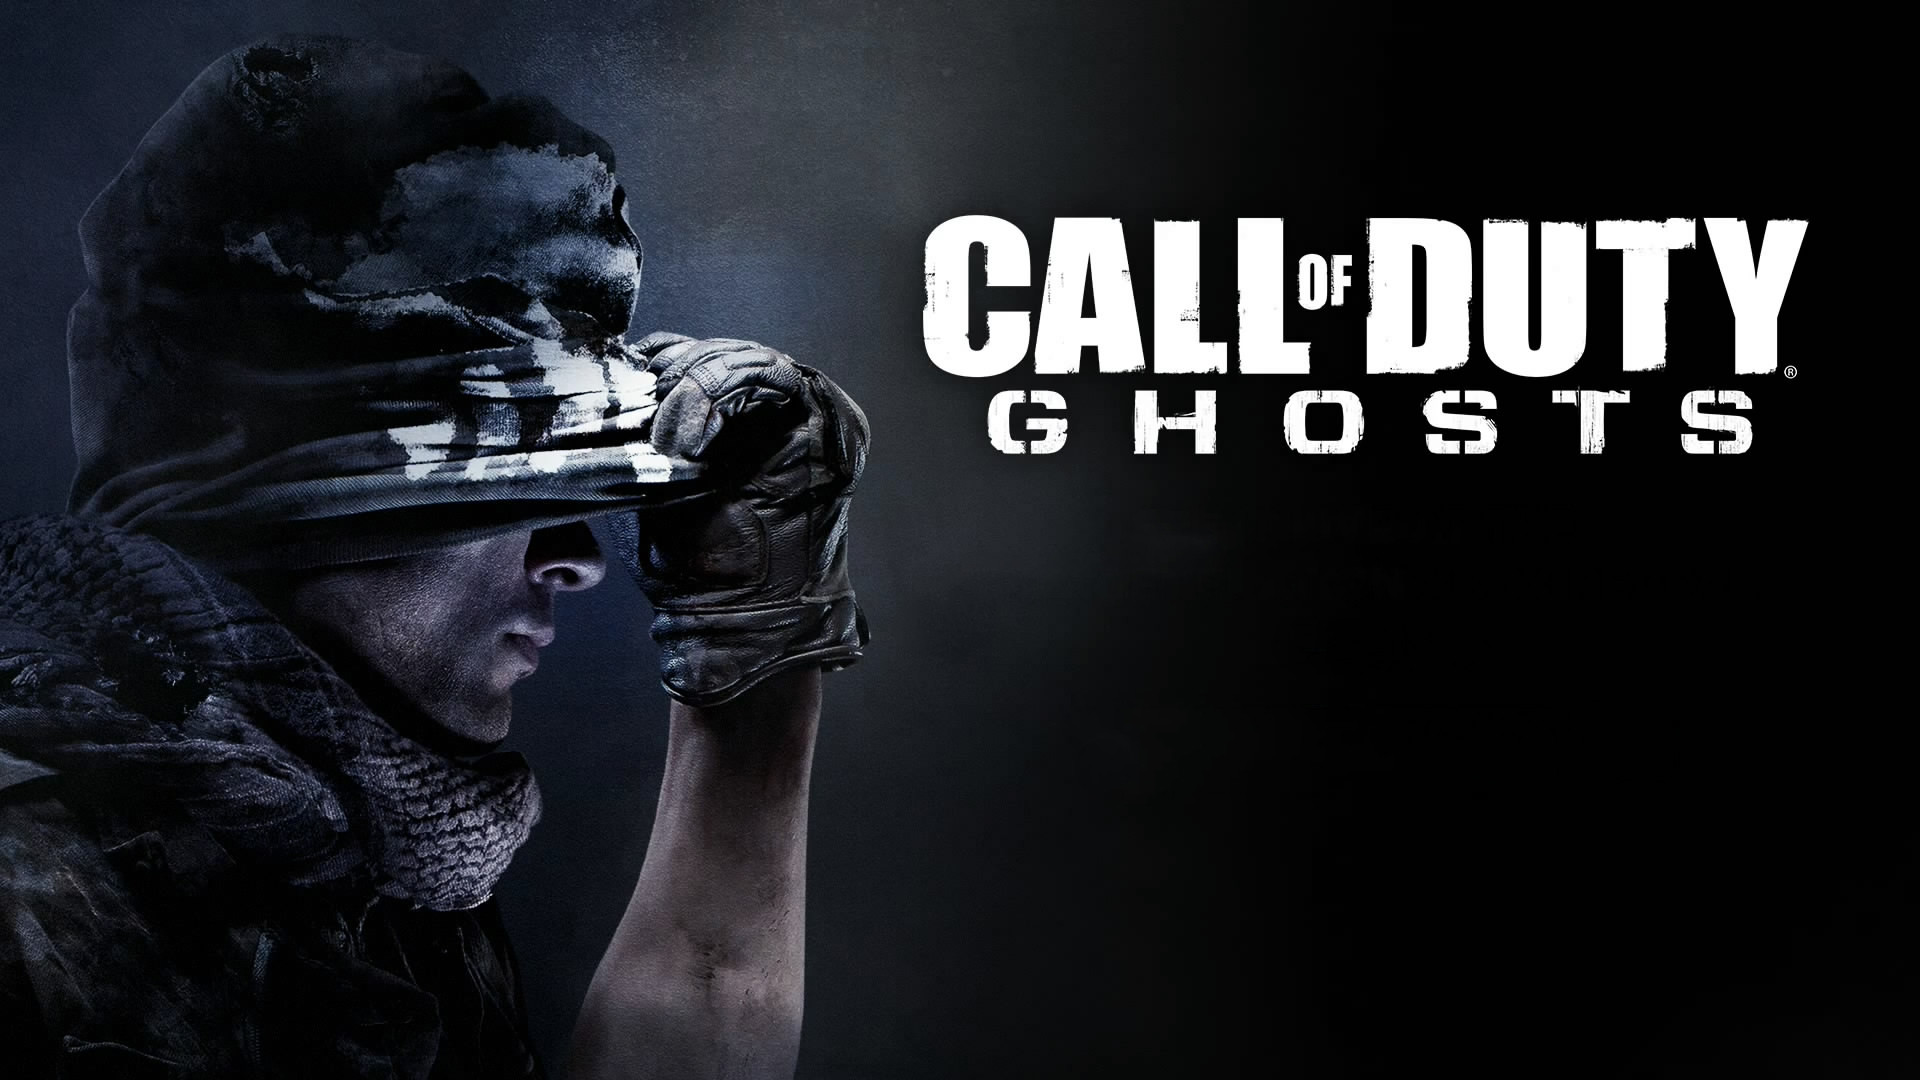 Call of Duty Ghosts DLC Devastation Trailer and Release Date